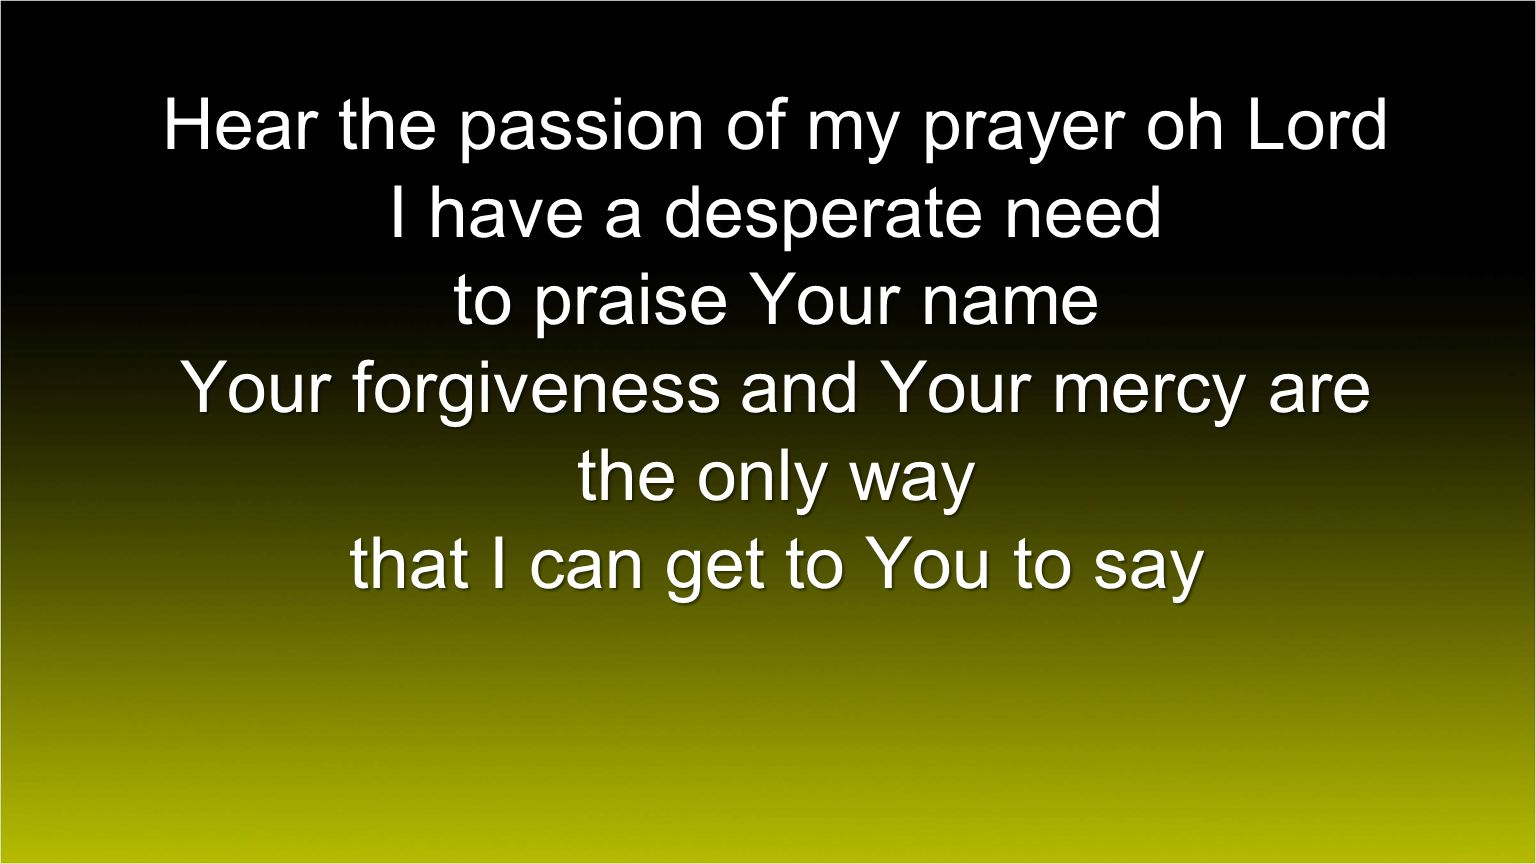 Hear the passion of my prayer oh Lord I have a desperate need